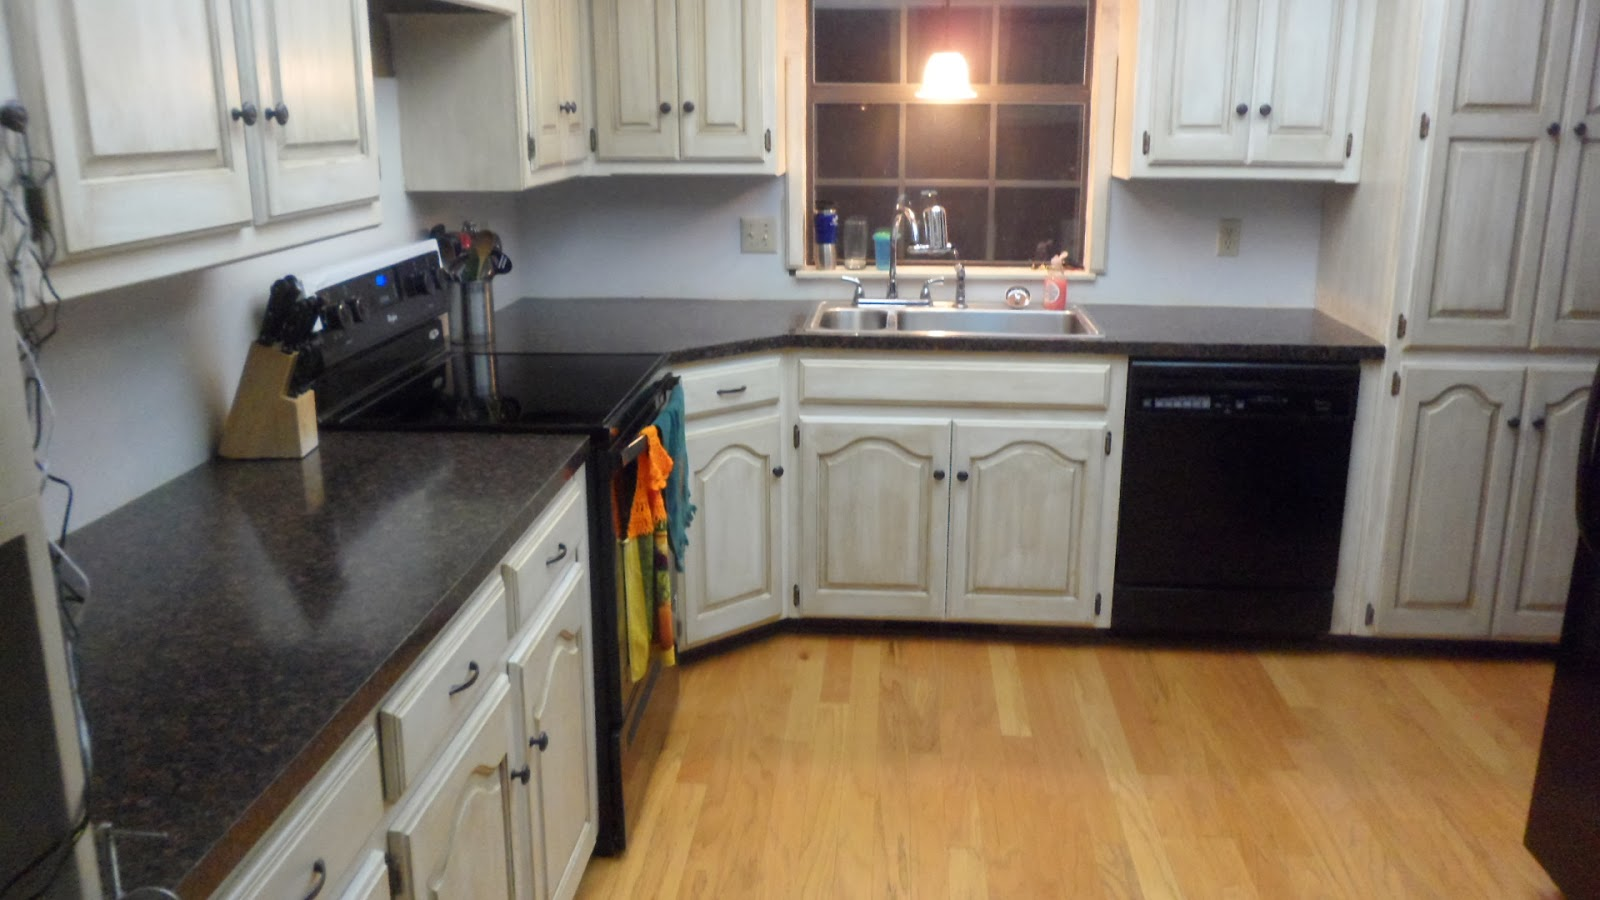 4 p 39 s in a pod kitchen remodel phase iii complete new for Complete new kitchen